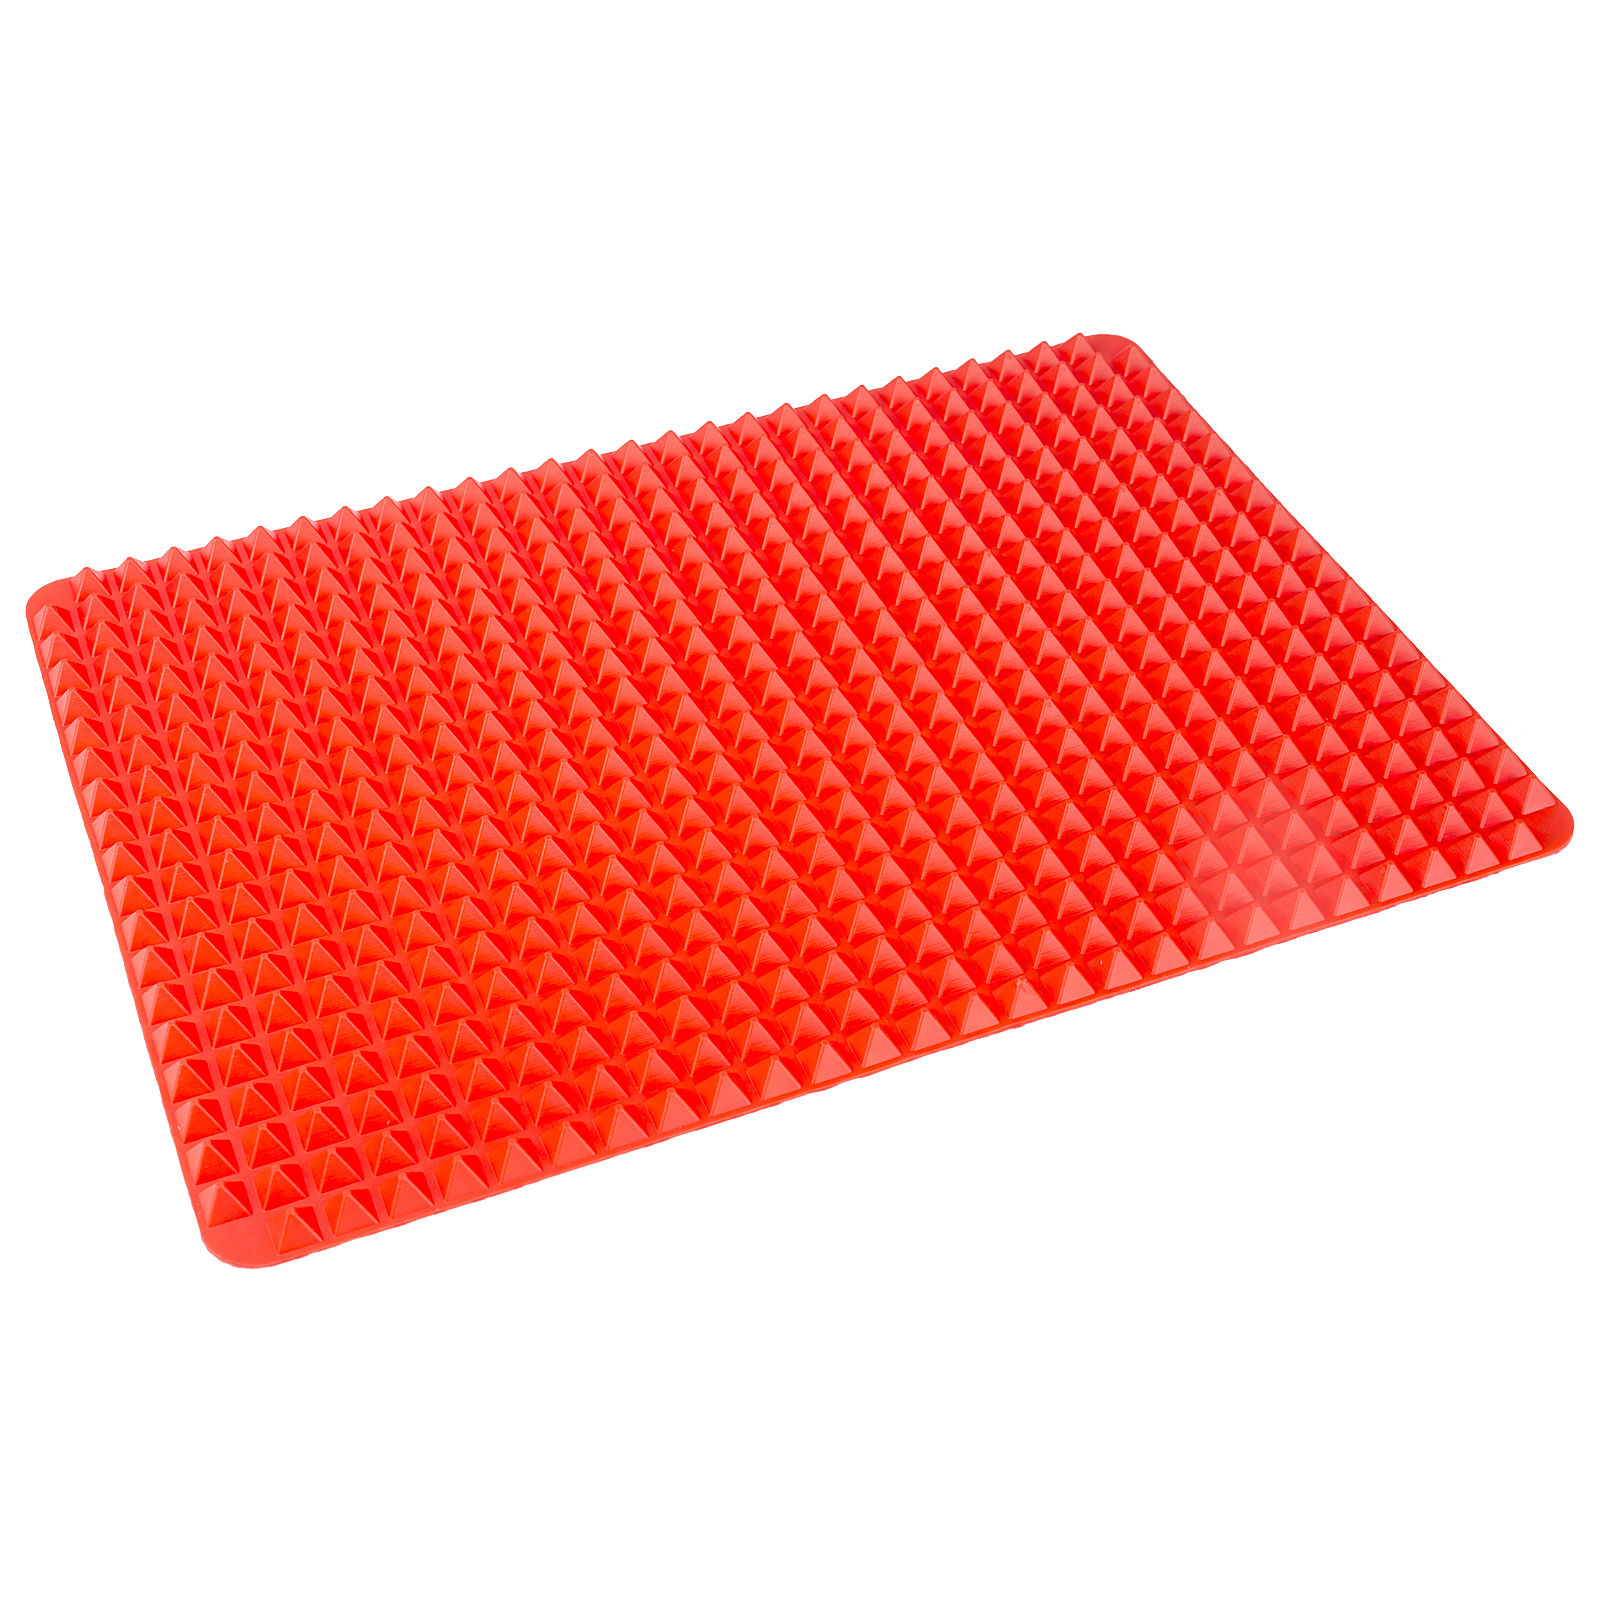 from colors pads shipping garden home high item table heat quality free silicone mats thick com pad aliexpress slip alibaba insulation in resistant mat on